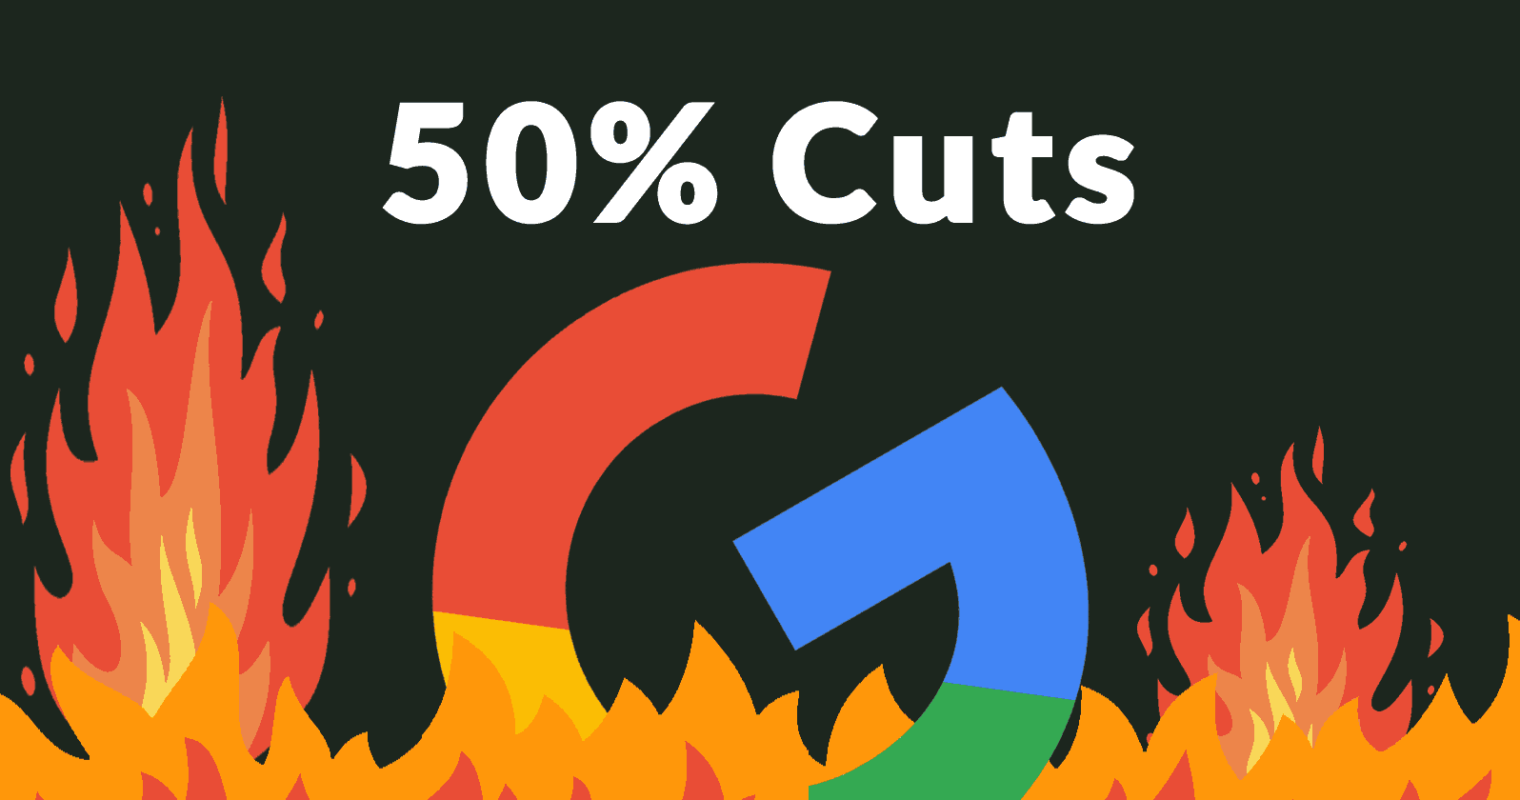 Google Cutting Up to 50% of Marketing Budget